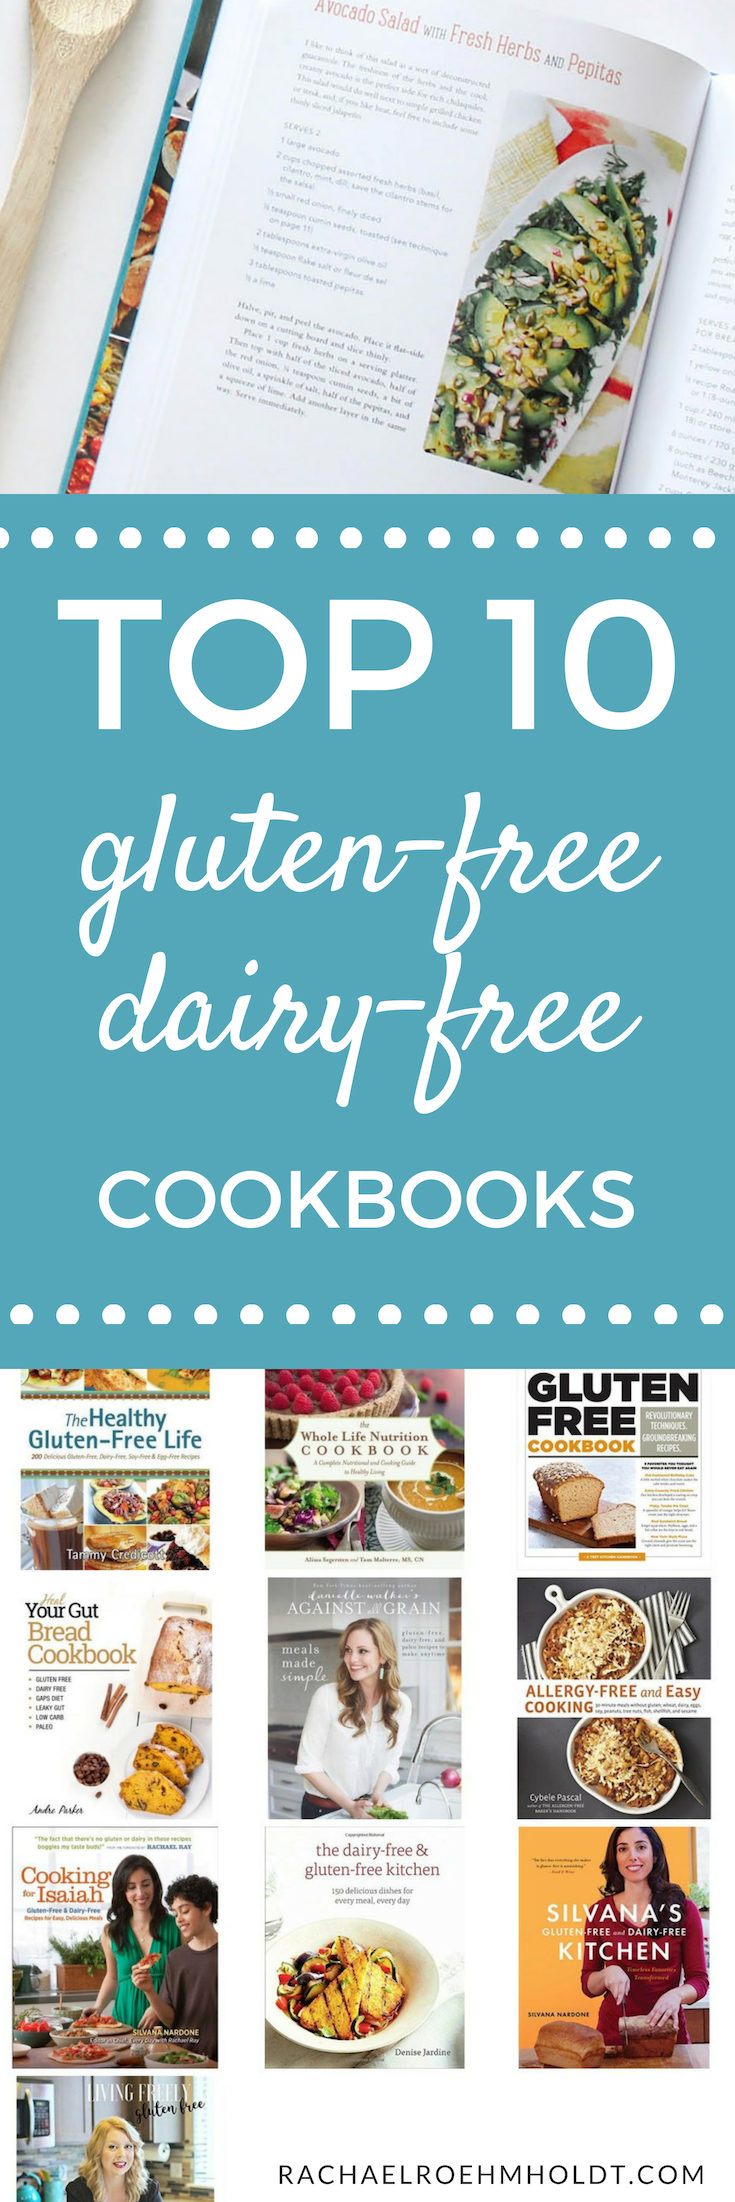 If you eat a gluten-free dairy-free diet, you're going to love these 10 cookbooks. With so many options, you're bound to find some amazing recipe inspiration to help you stick with this diet for the short and long-term.